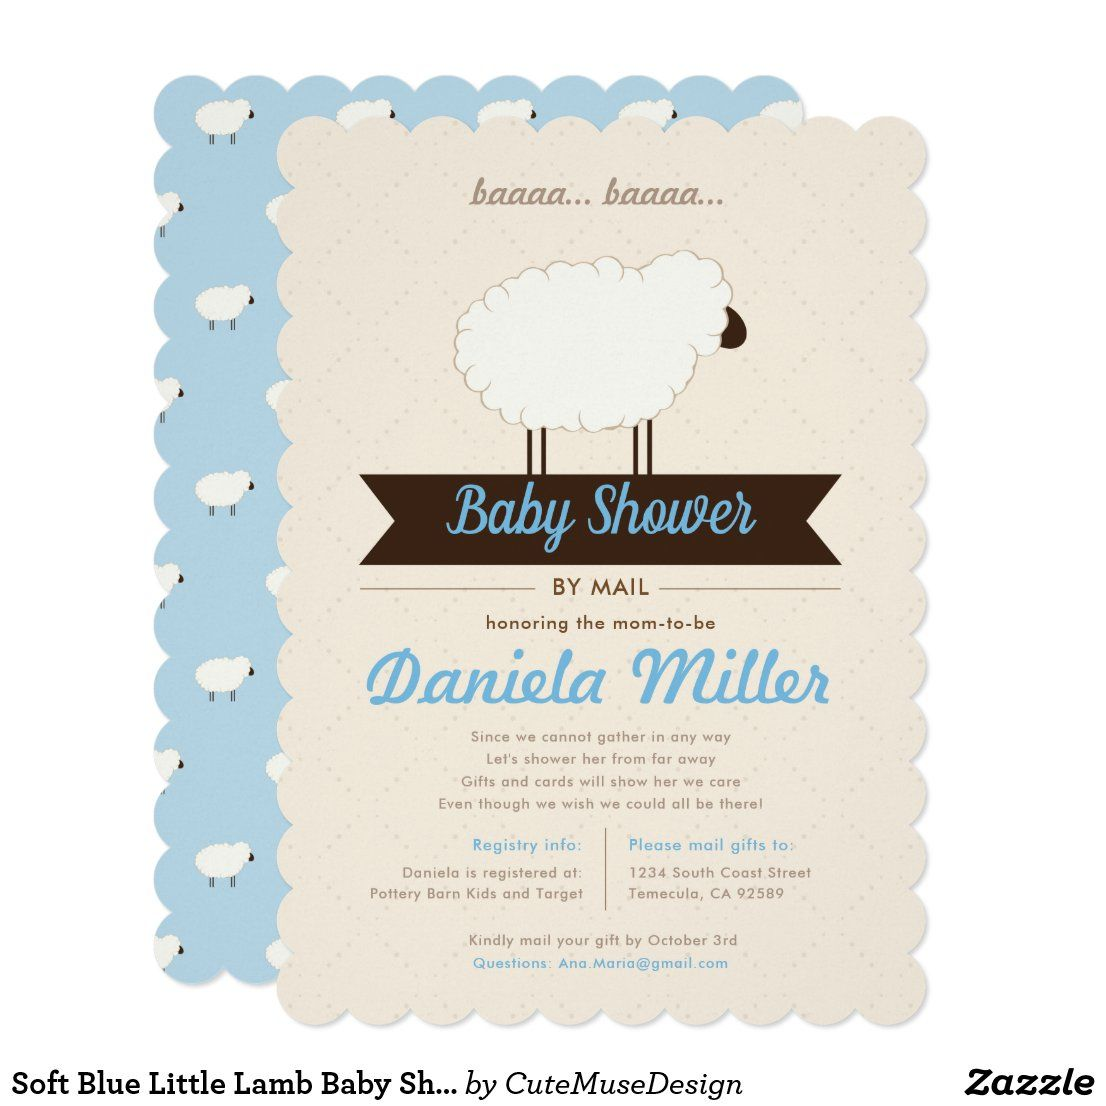 Soft Blue Little Lamb Baby Shower by Mail Invitati